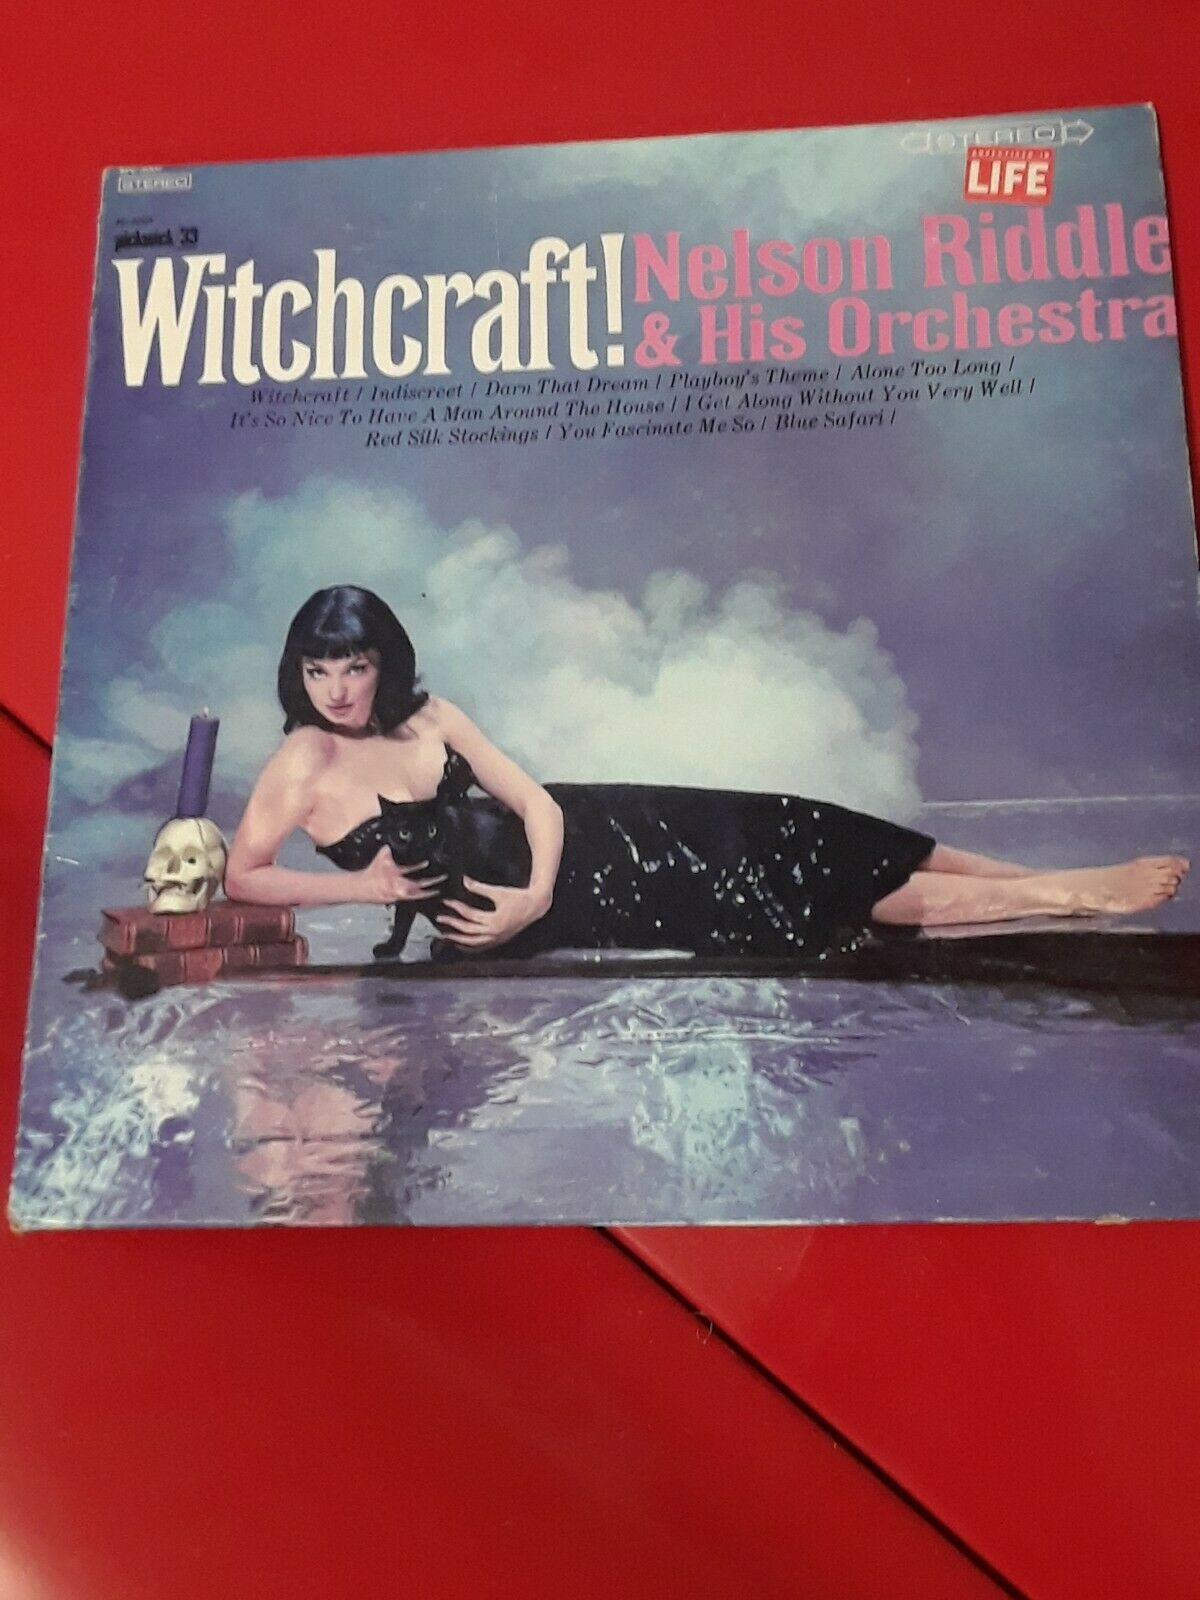 VINTAGE WHITCHCRAFT! NELSON RIDDLE AND HIS ORCHESTRA VINYL LP HALLOWEEN RECORD